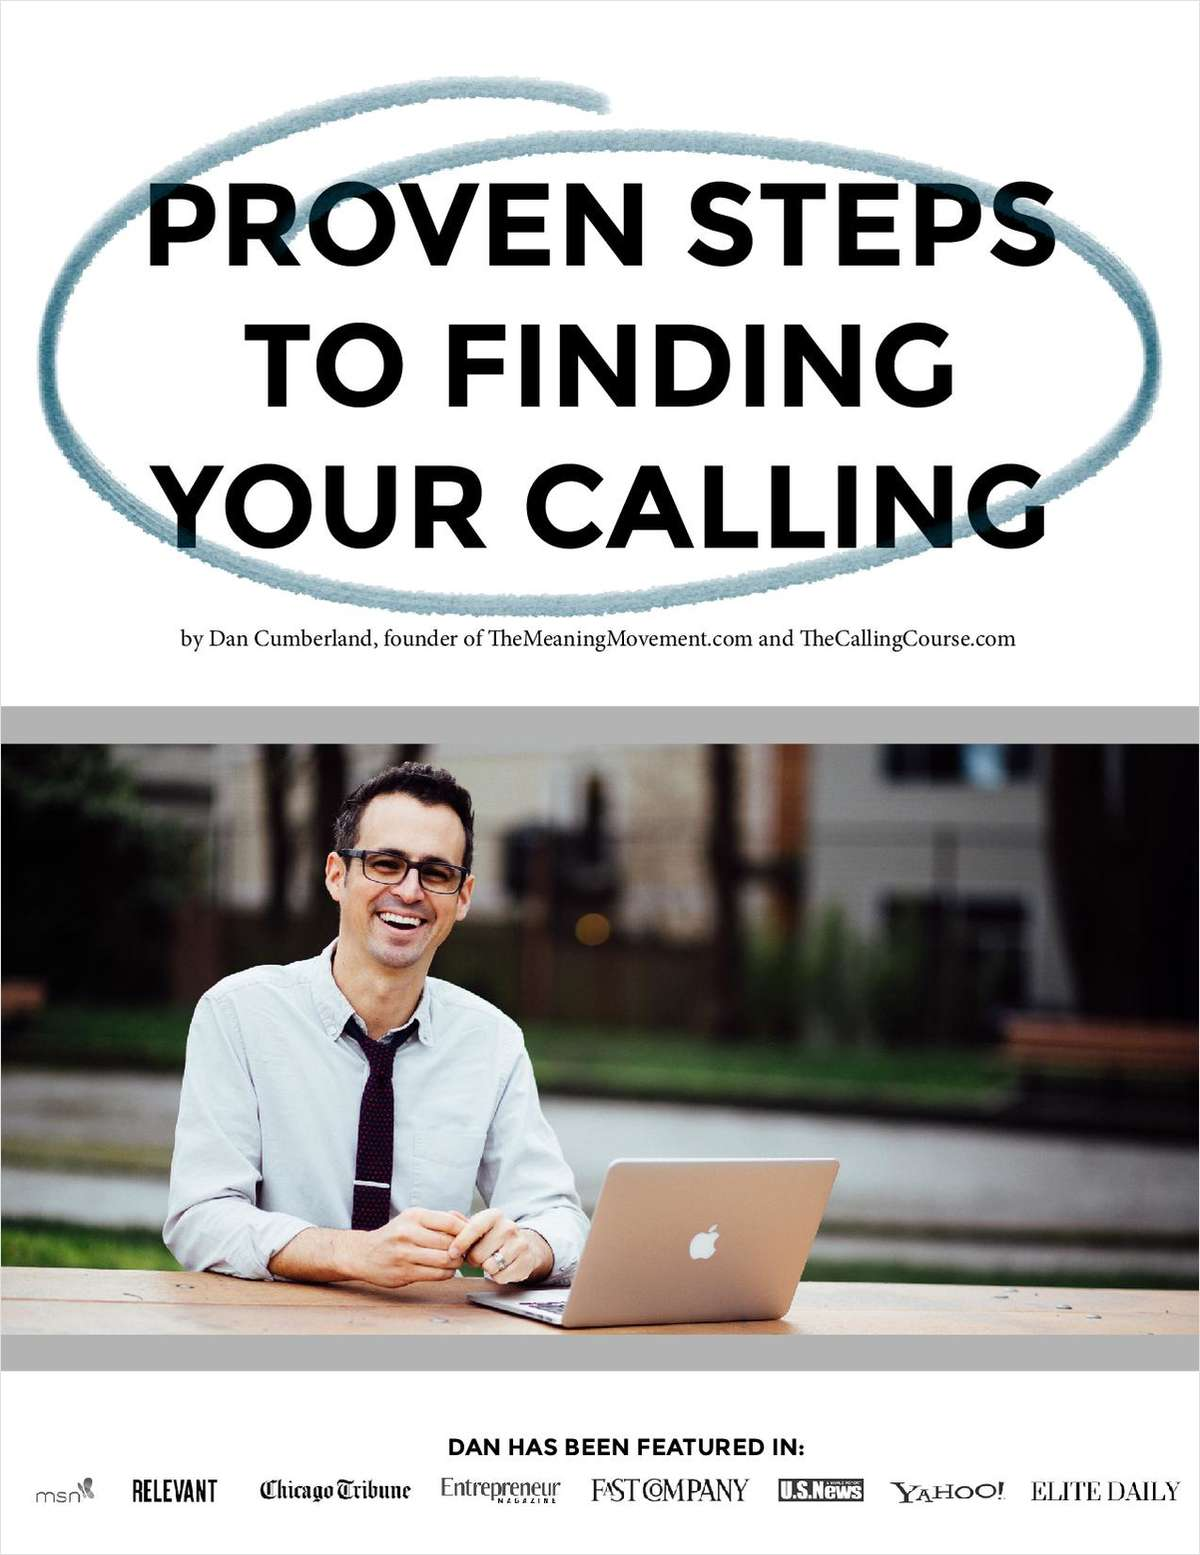 Proven Steps to Finding Your Calling